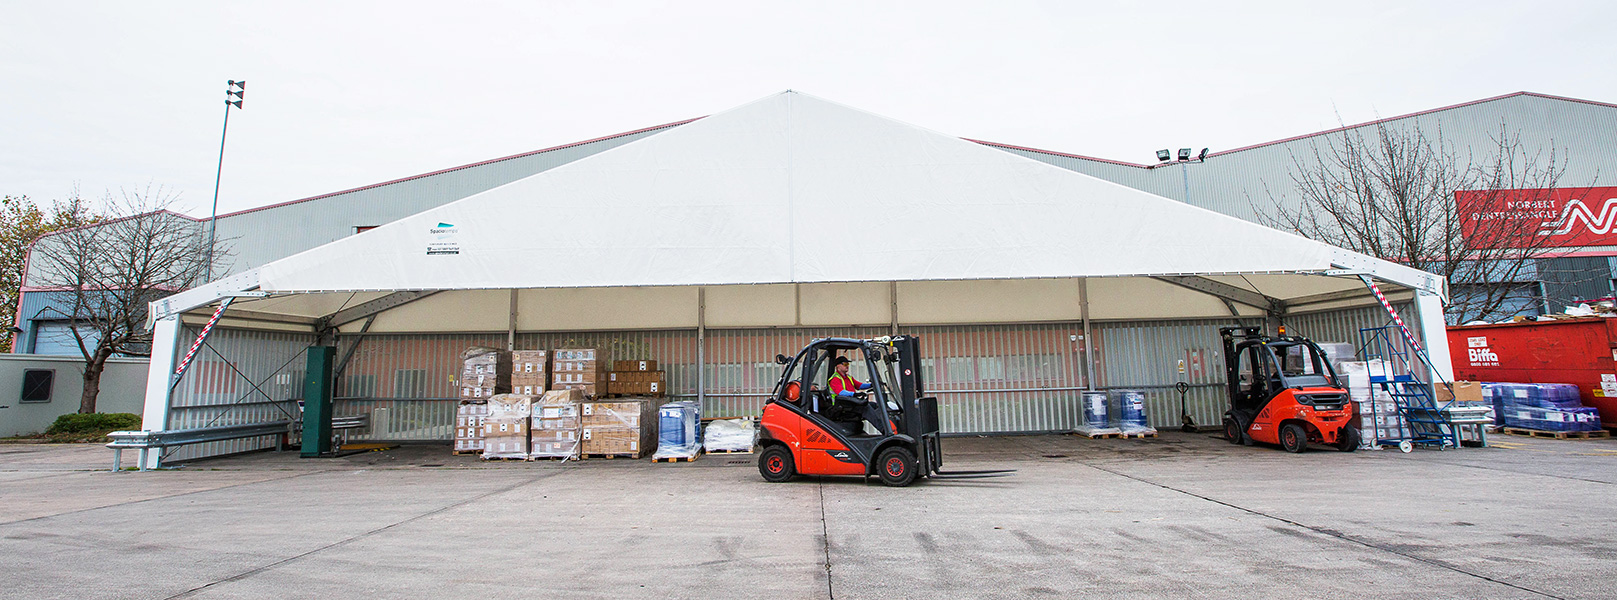 industrial loading bays and canopies